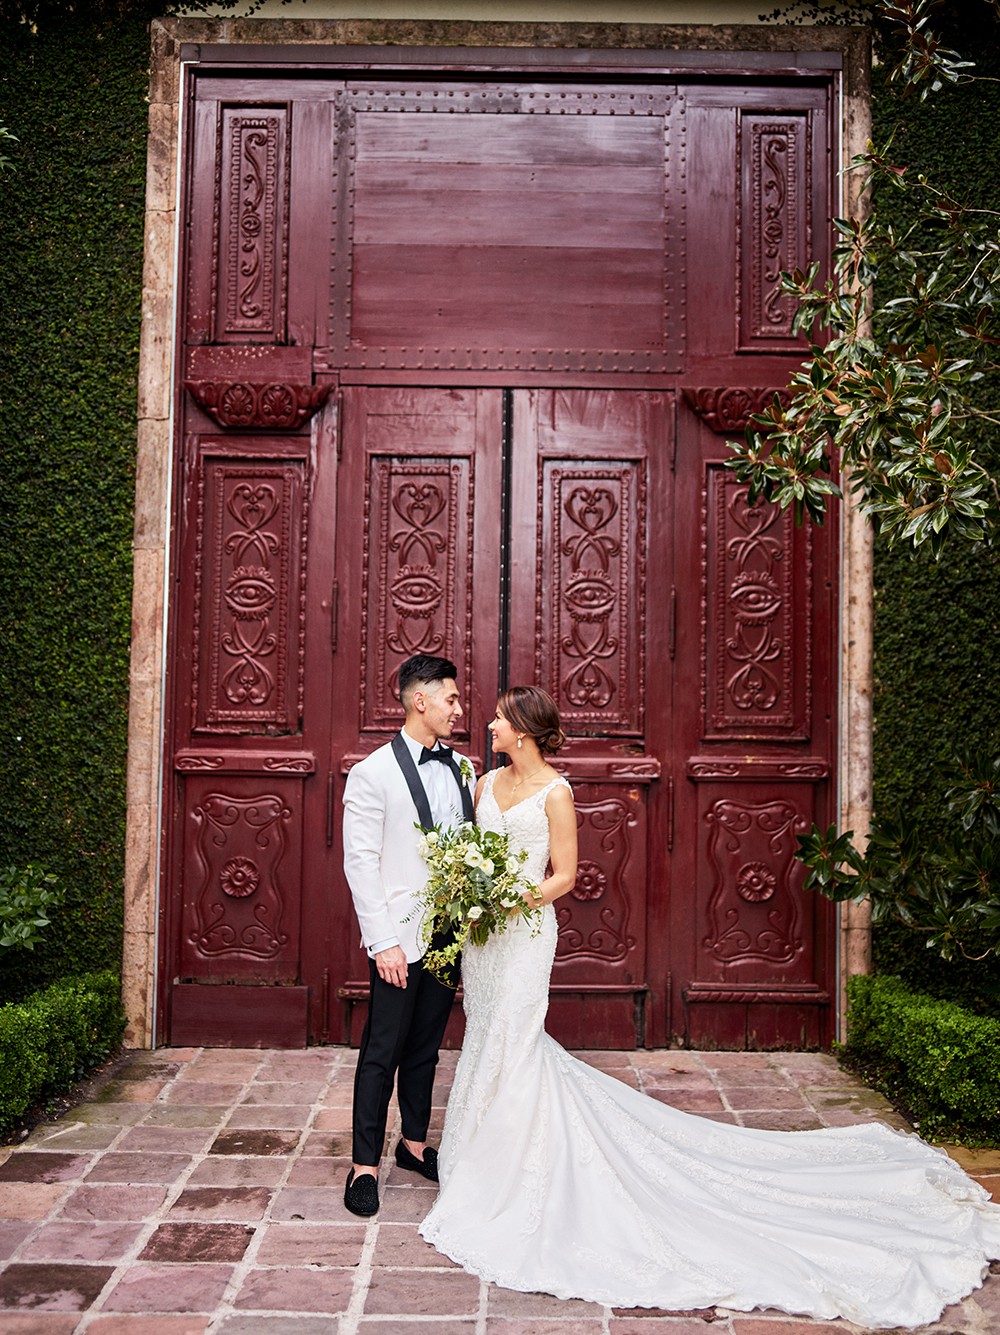 red door - wedding photography at the bell tower on 34th